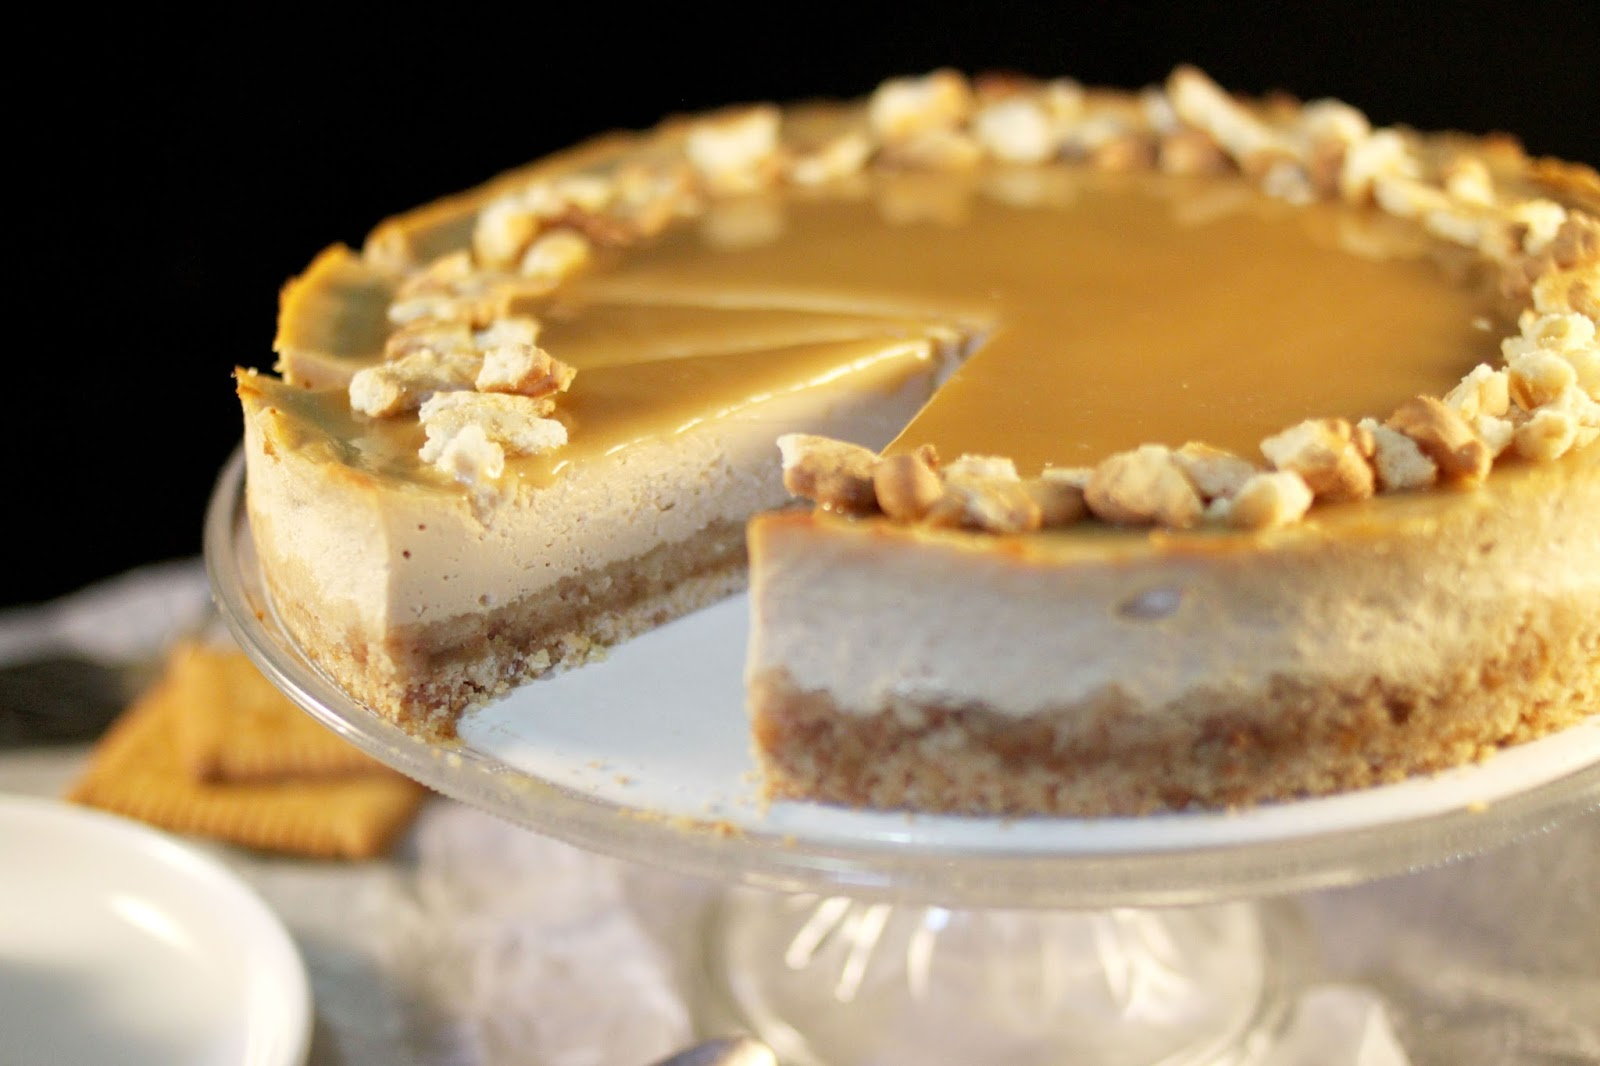 chlo 233 d 233 lice cheesecake aux petits beurre caramel beurre sal 233